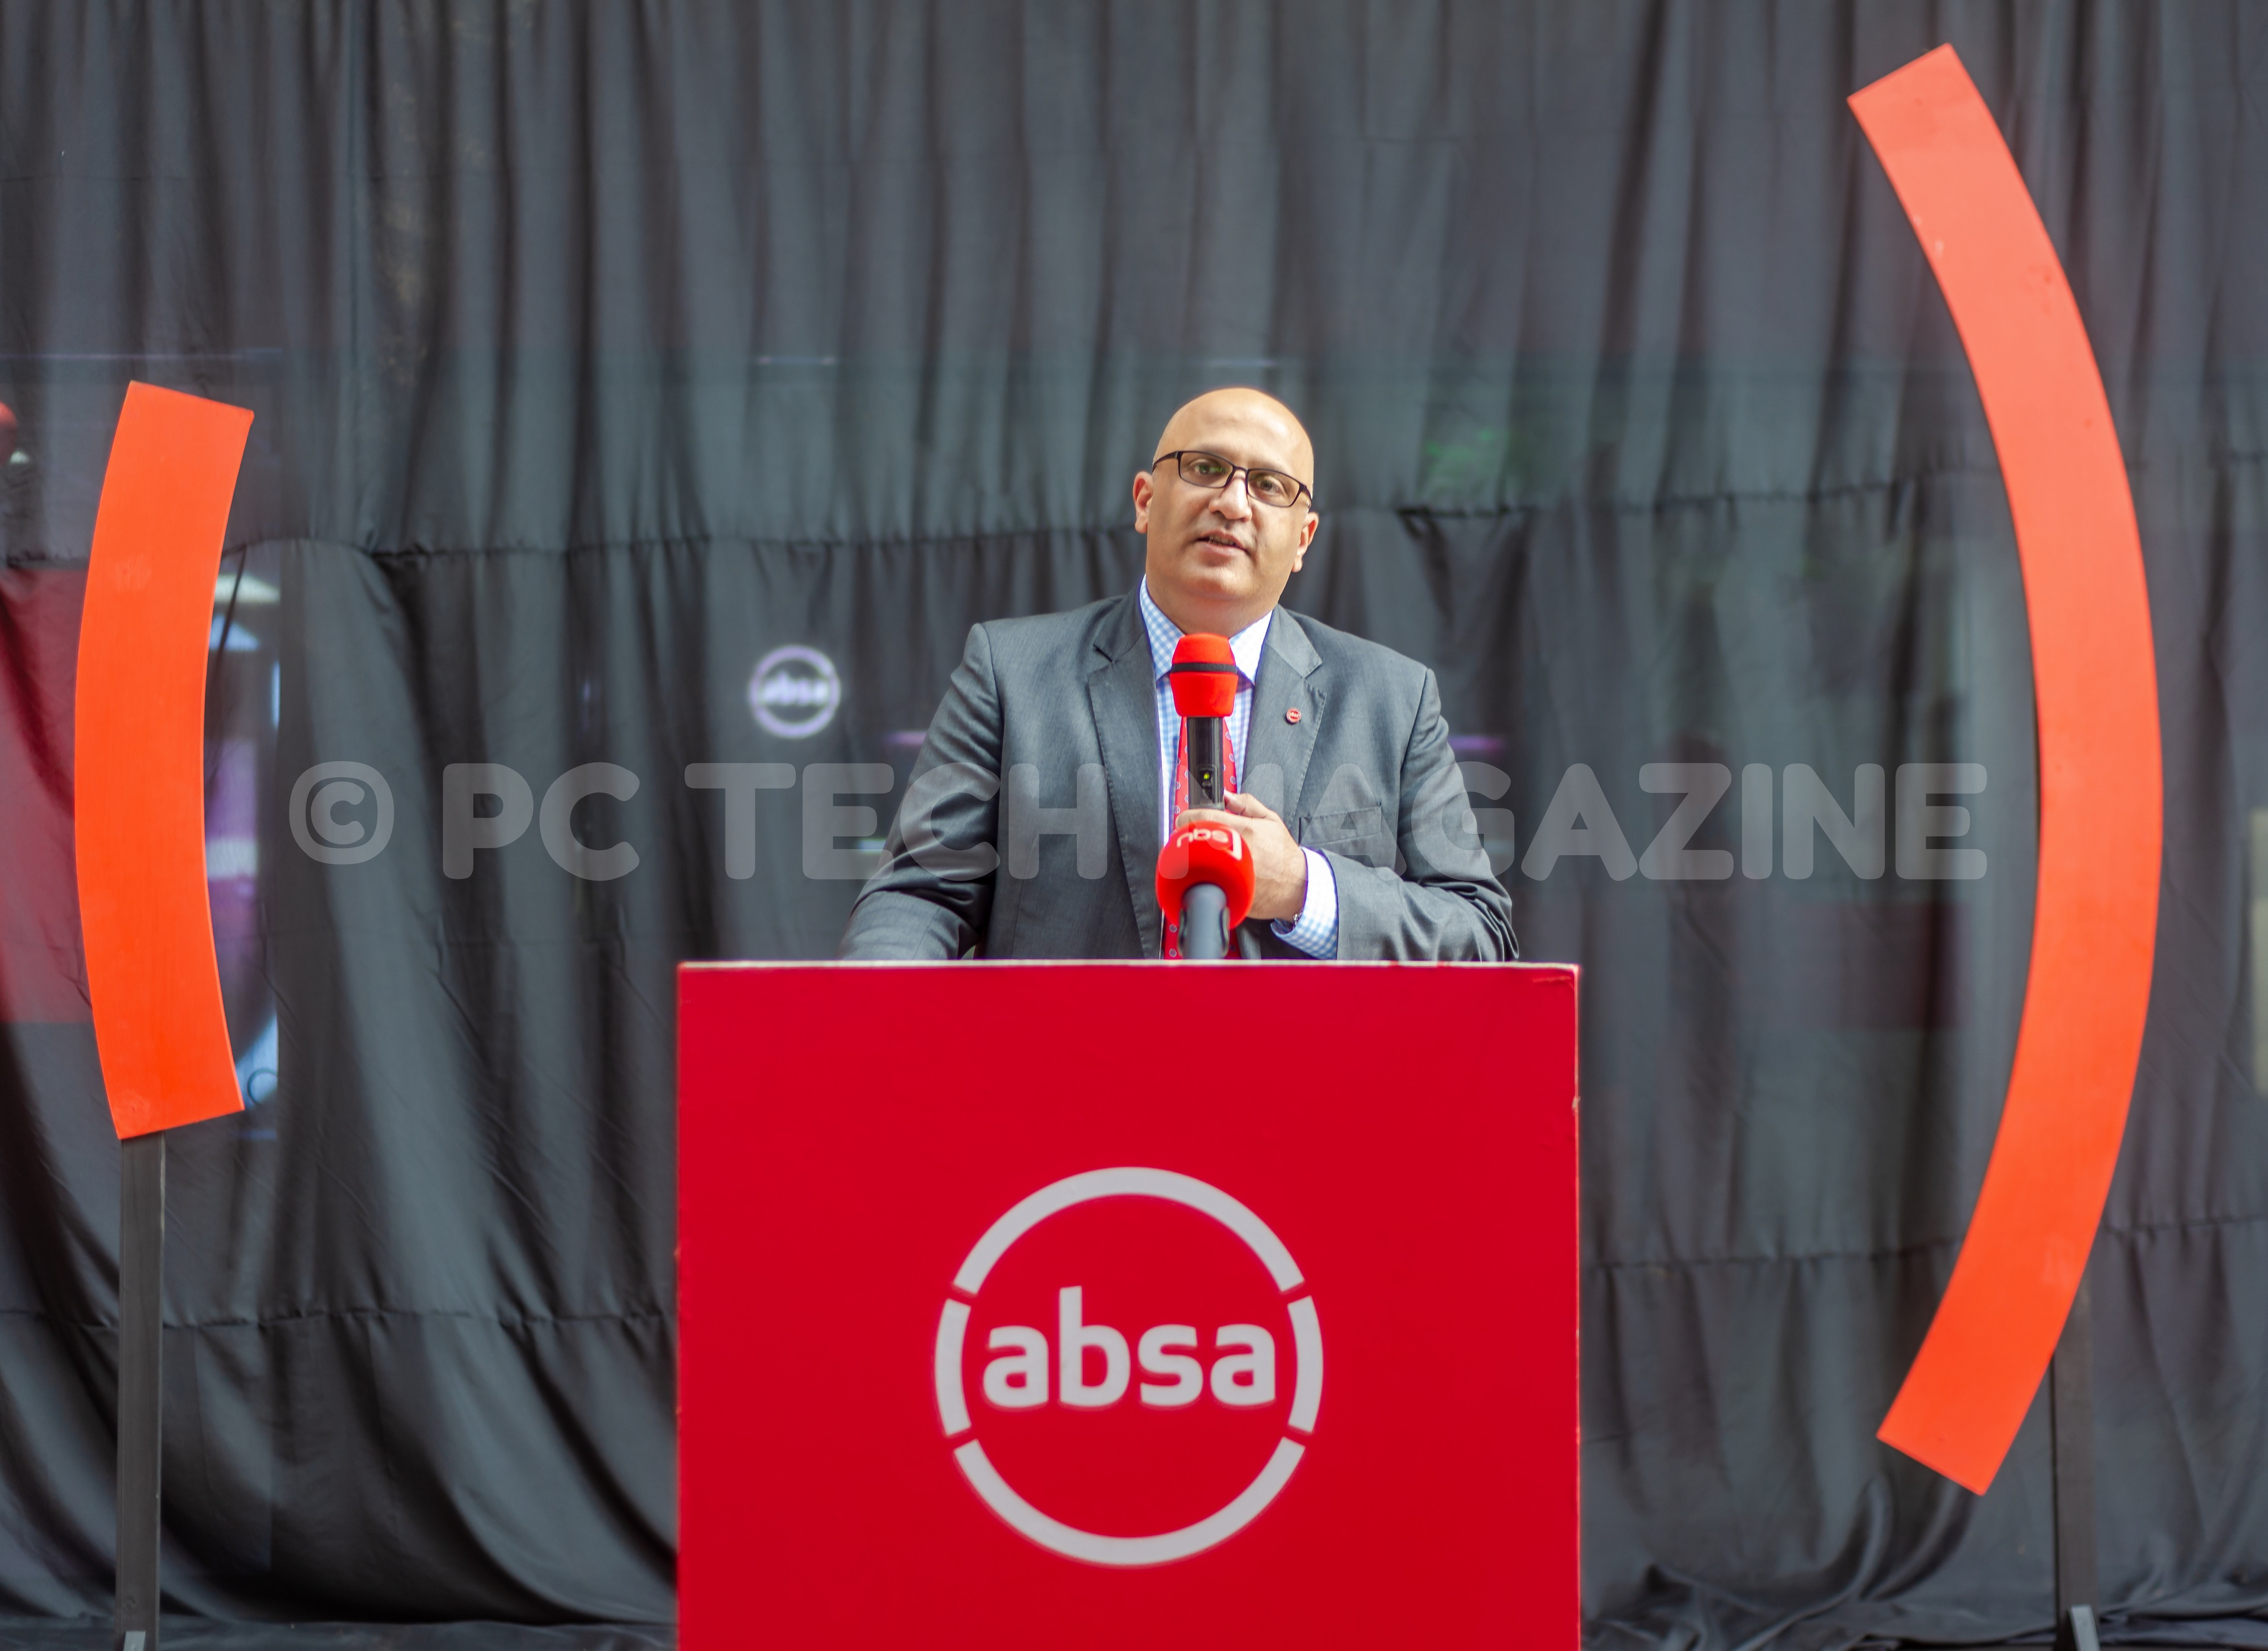 Absa Bank Uganda's MD; Nazim Mahmood speaking at the launch of the bank's digital branch on Thursday, November 14th, 2019. Photo by/ OLUPOT NATHAN ERNEST